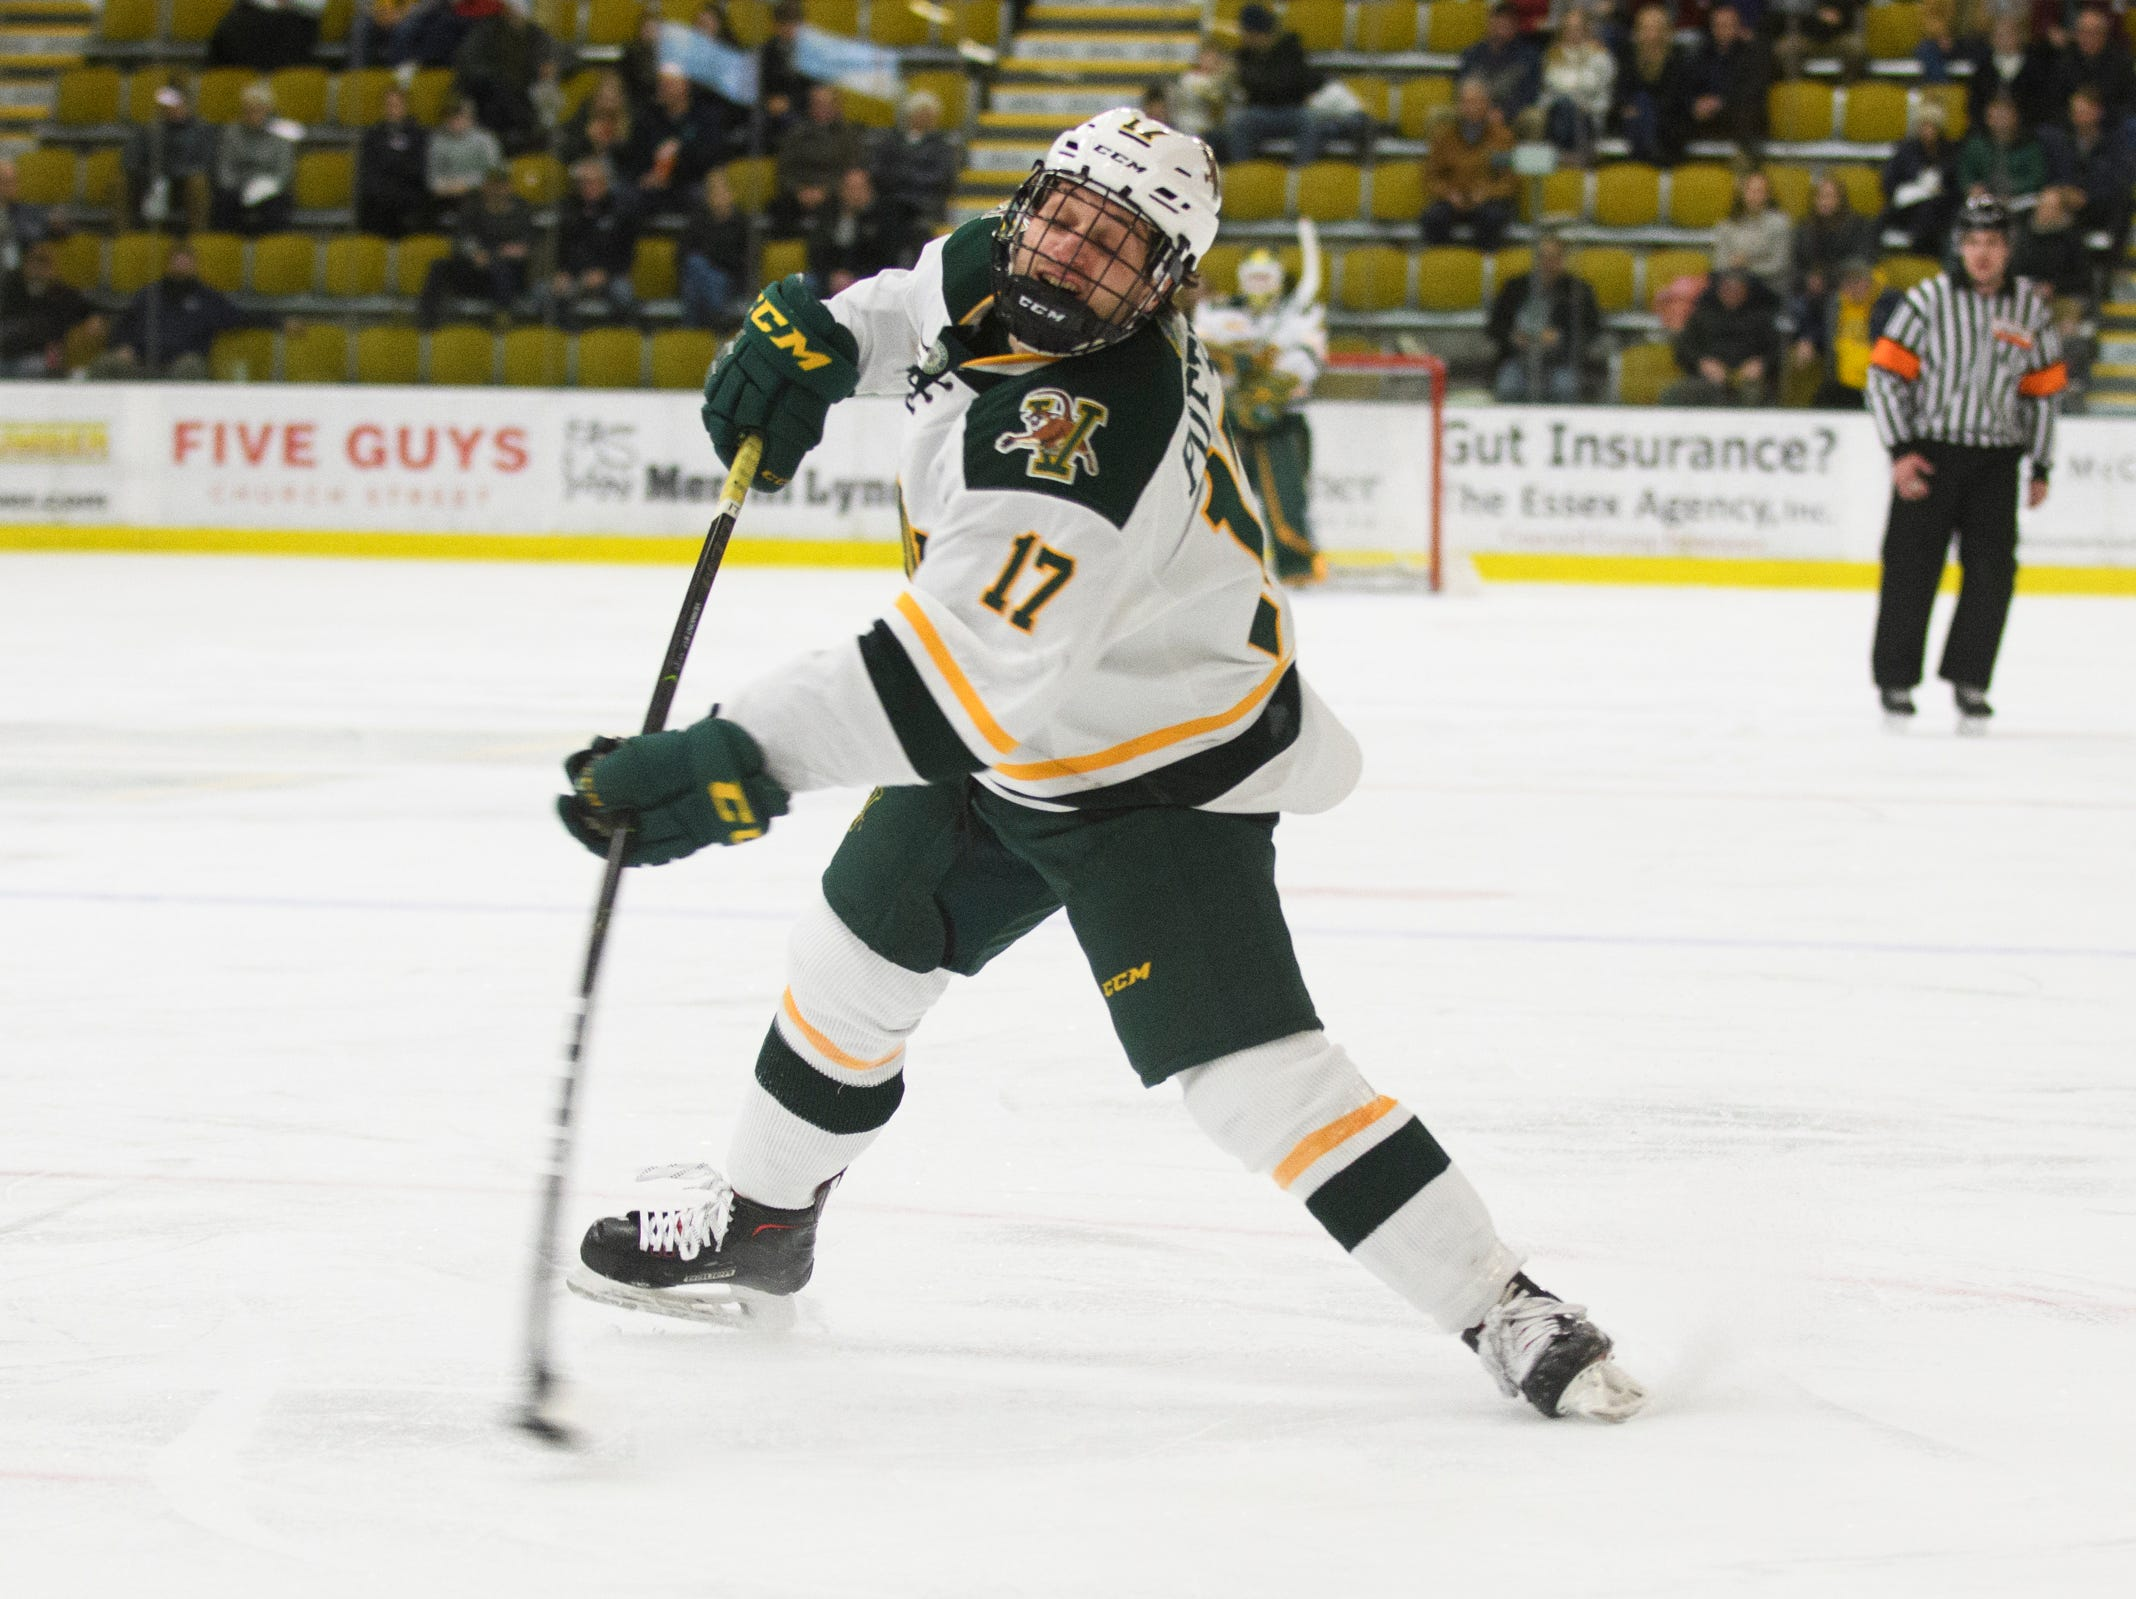 Vermont forward Craig Puffer (17) shoots the puck during the men's hockey game between the Sacred Heart Pioneers and the Vermont Catamounts at Gutterson Field House on Friday night January 4, 2019 in Burlington.